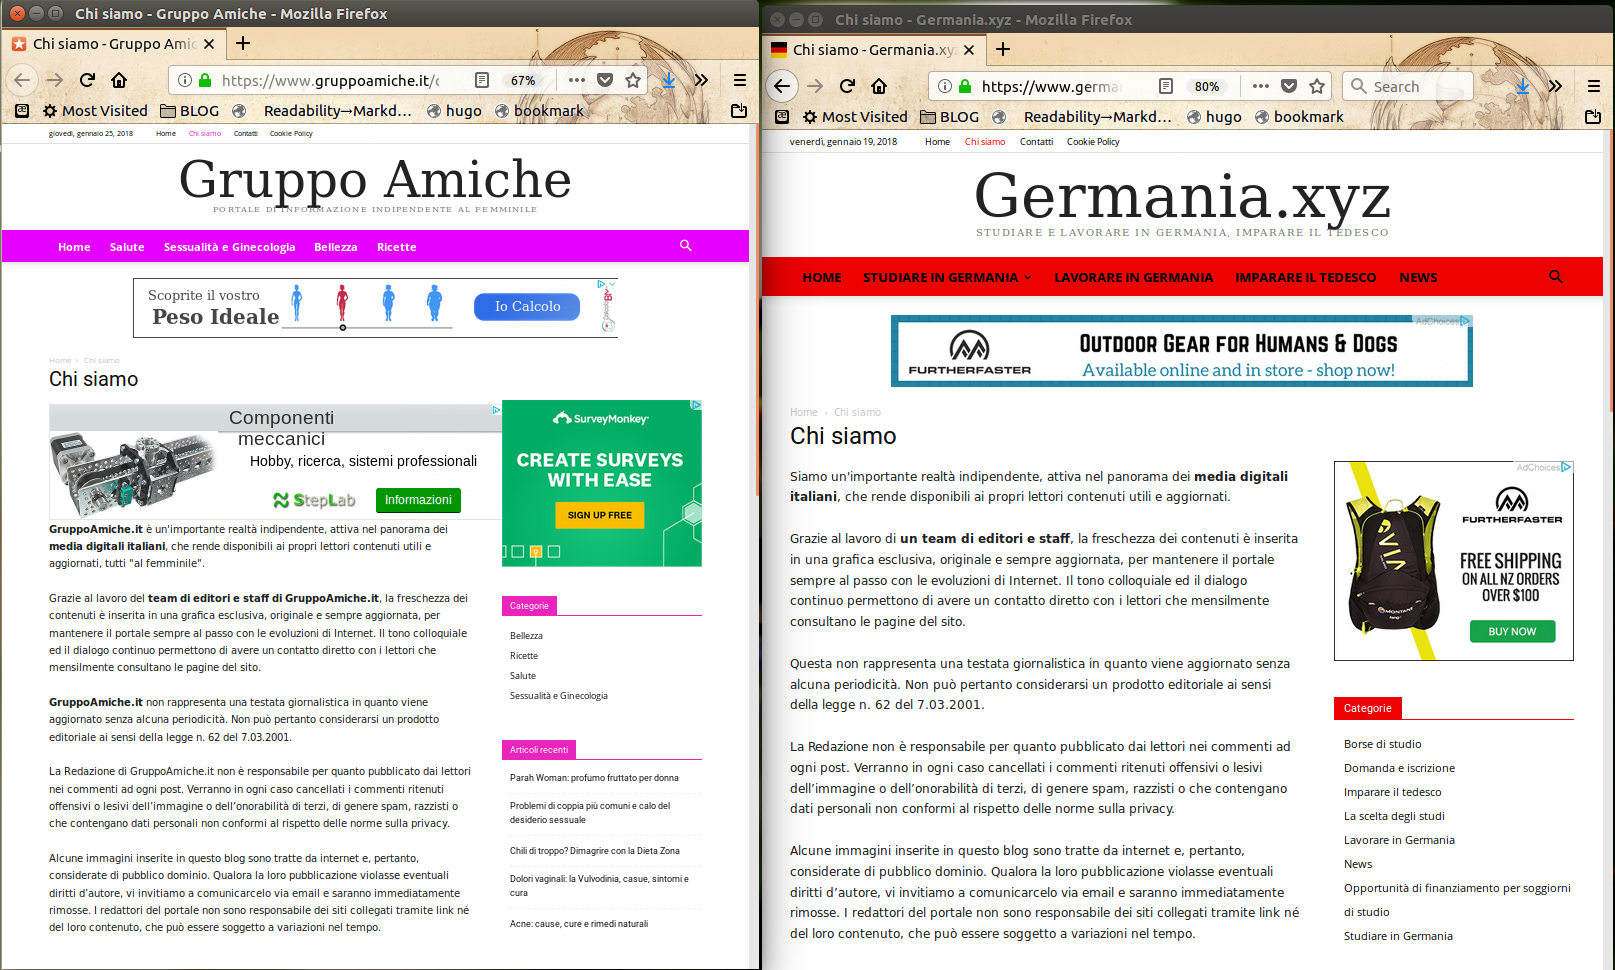 When news are true, but CLONED /img/00-gruppoamiche.it-germania.xyz.png